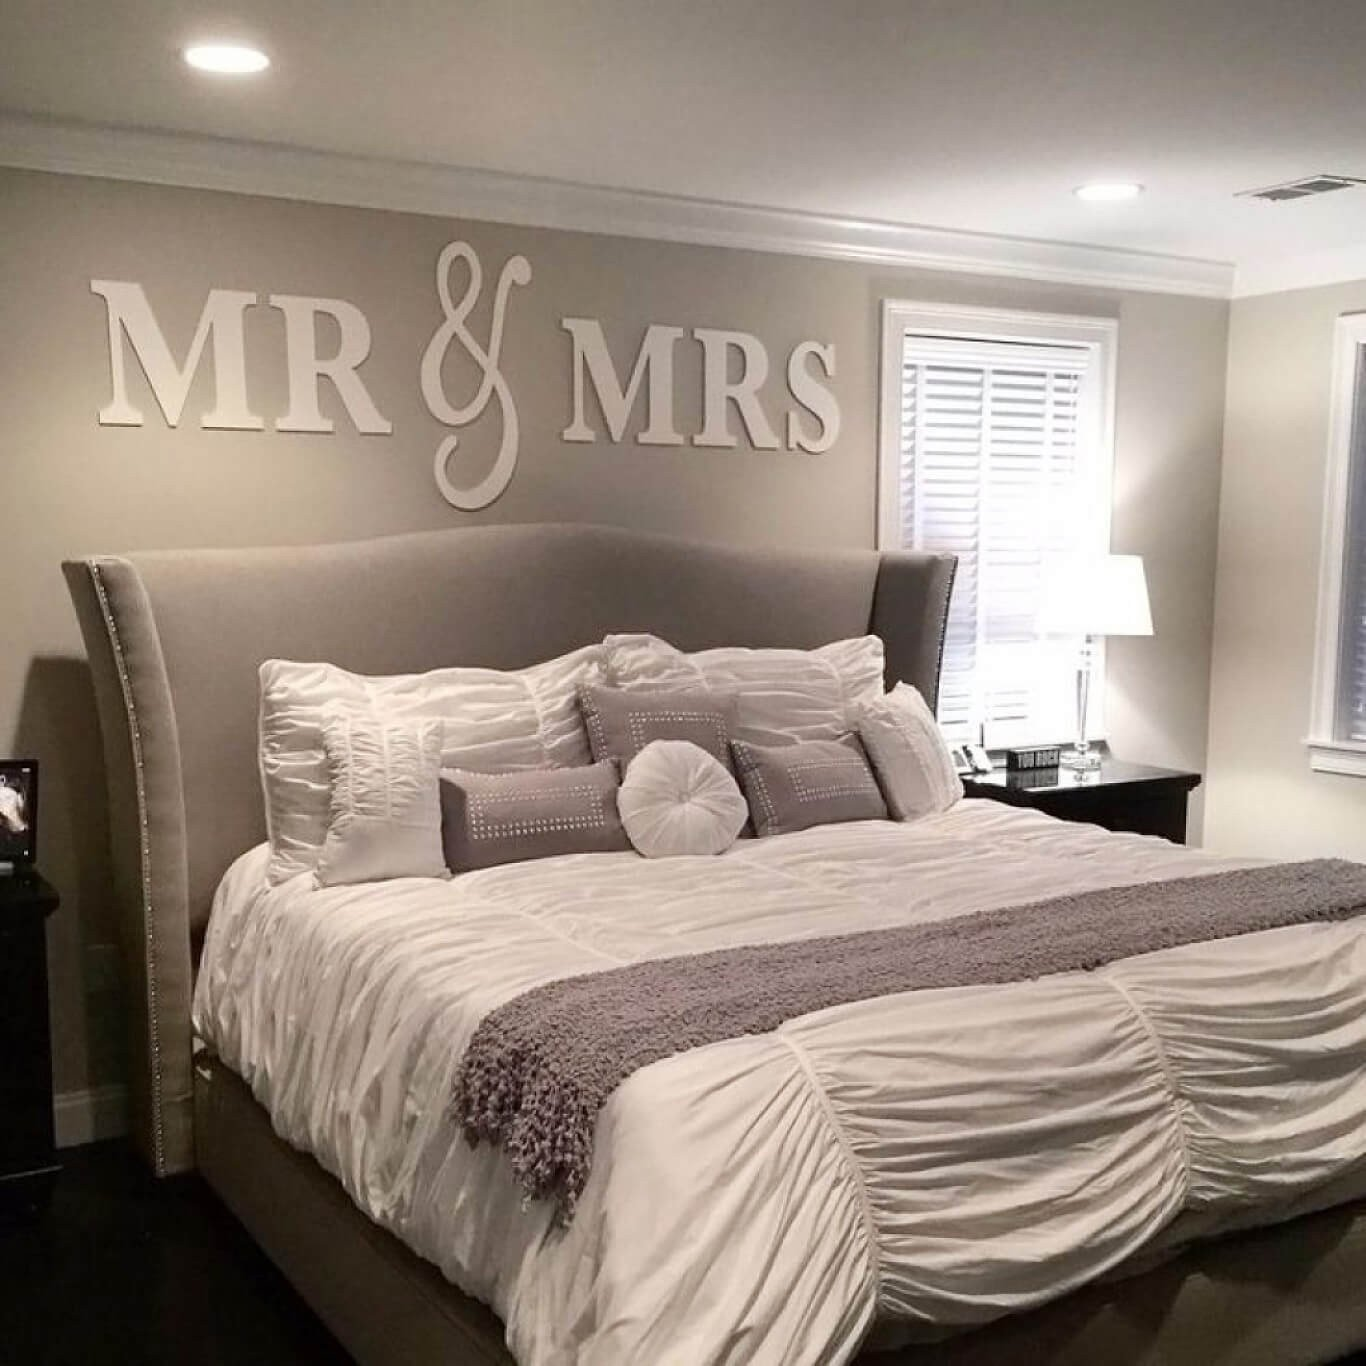 Wall Decor Ideas for Bedroom Awesome 25 Best Bedroom Wall Decor Ideas and Designs for 2019